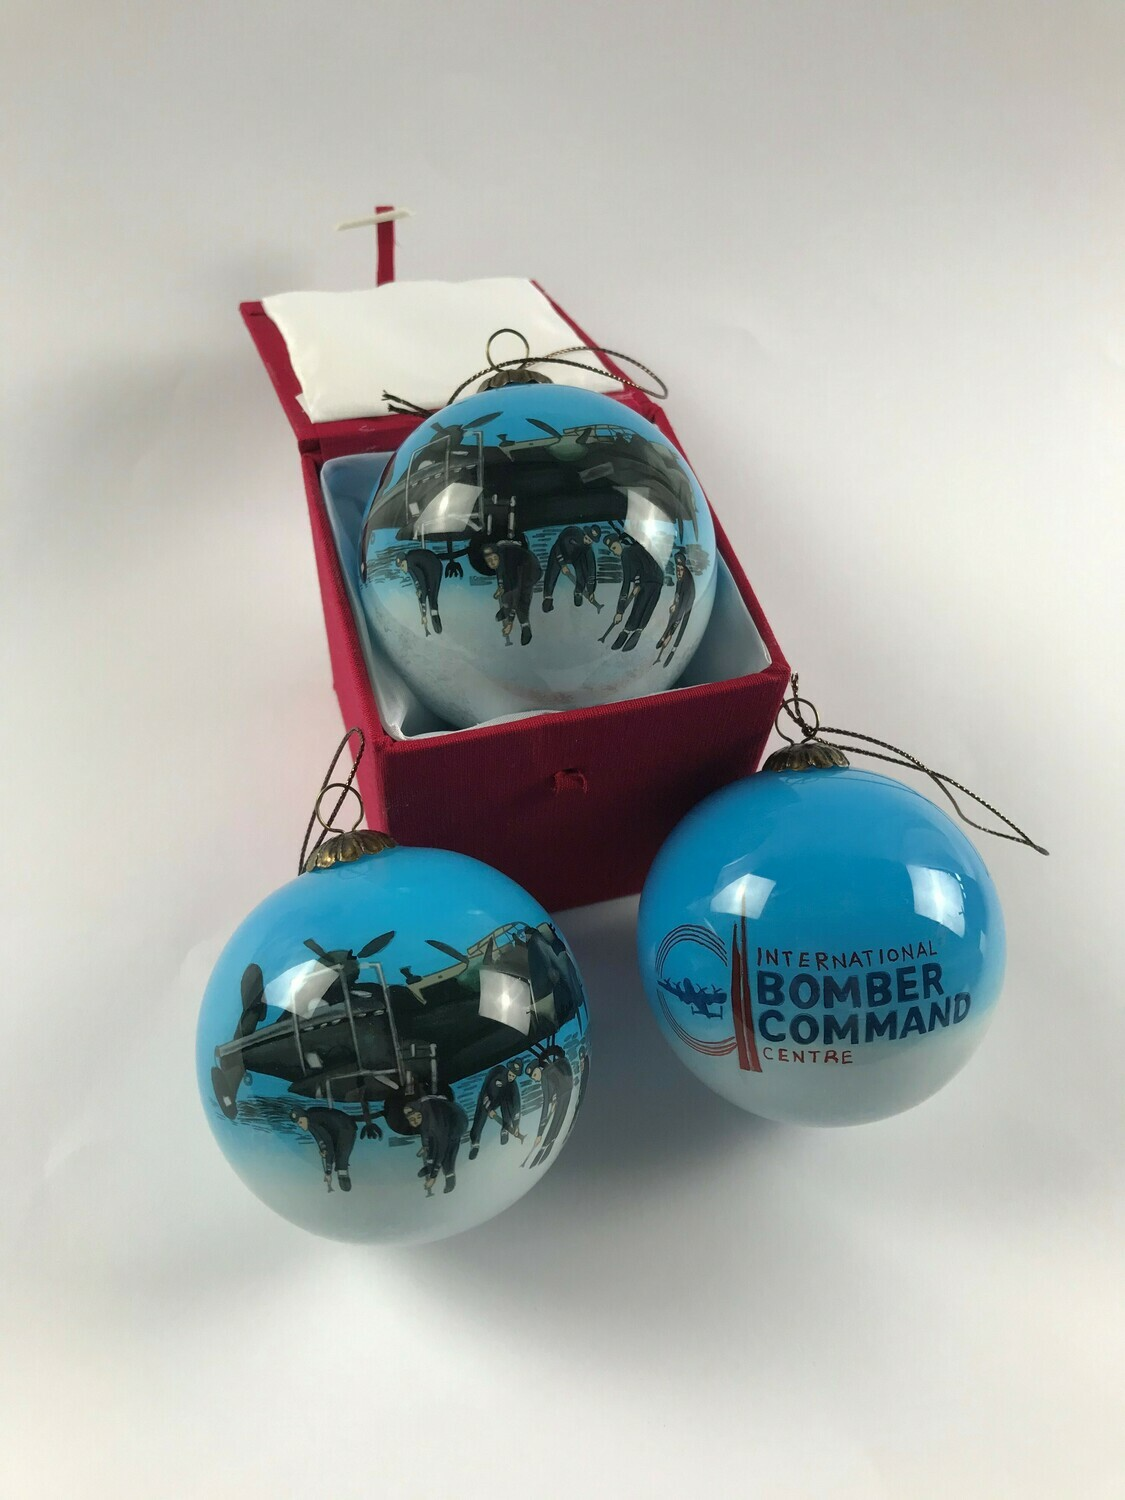 IBCC Lancaster Christmas Bauble